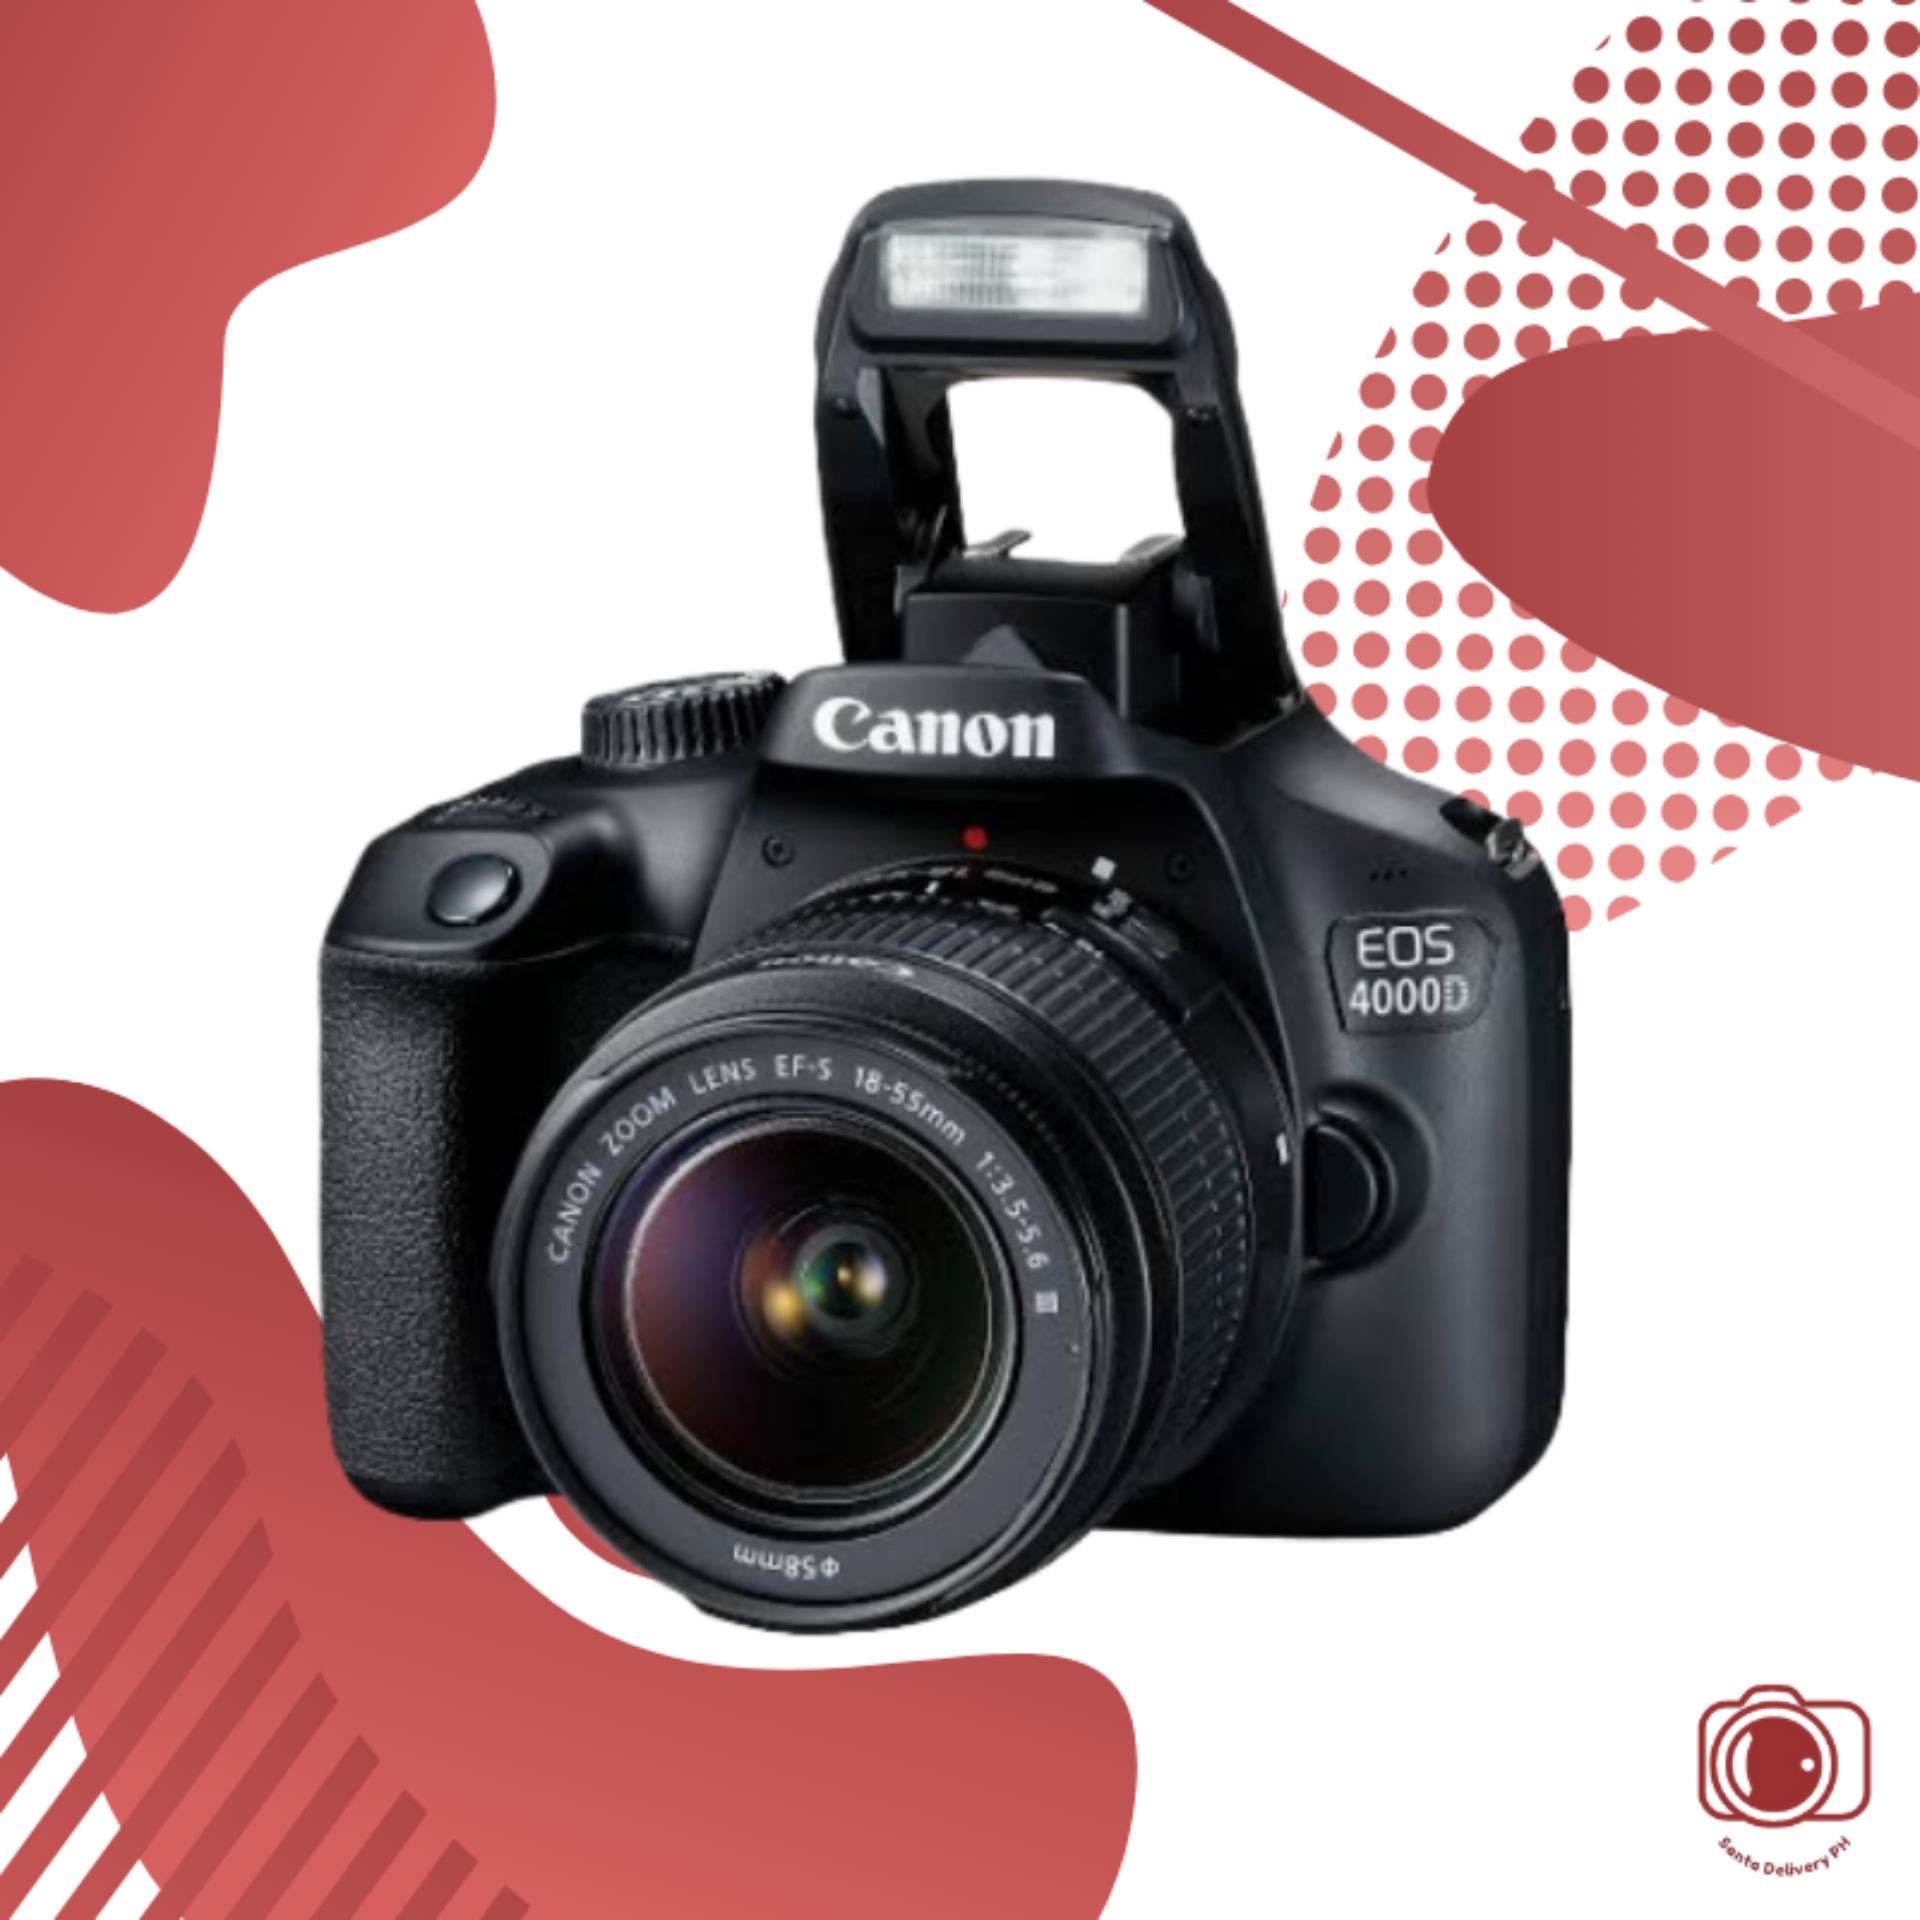 Canon Eos 4000d Dslr Camera With Ef S 18 55 Mm F 3 5 5 6 Iii Lens Brand New With 1 Year Warranty Seller From Philippines So Any Warranty Issues Are Easier Than Buying From A